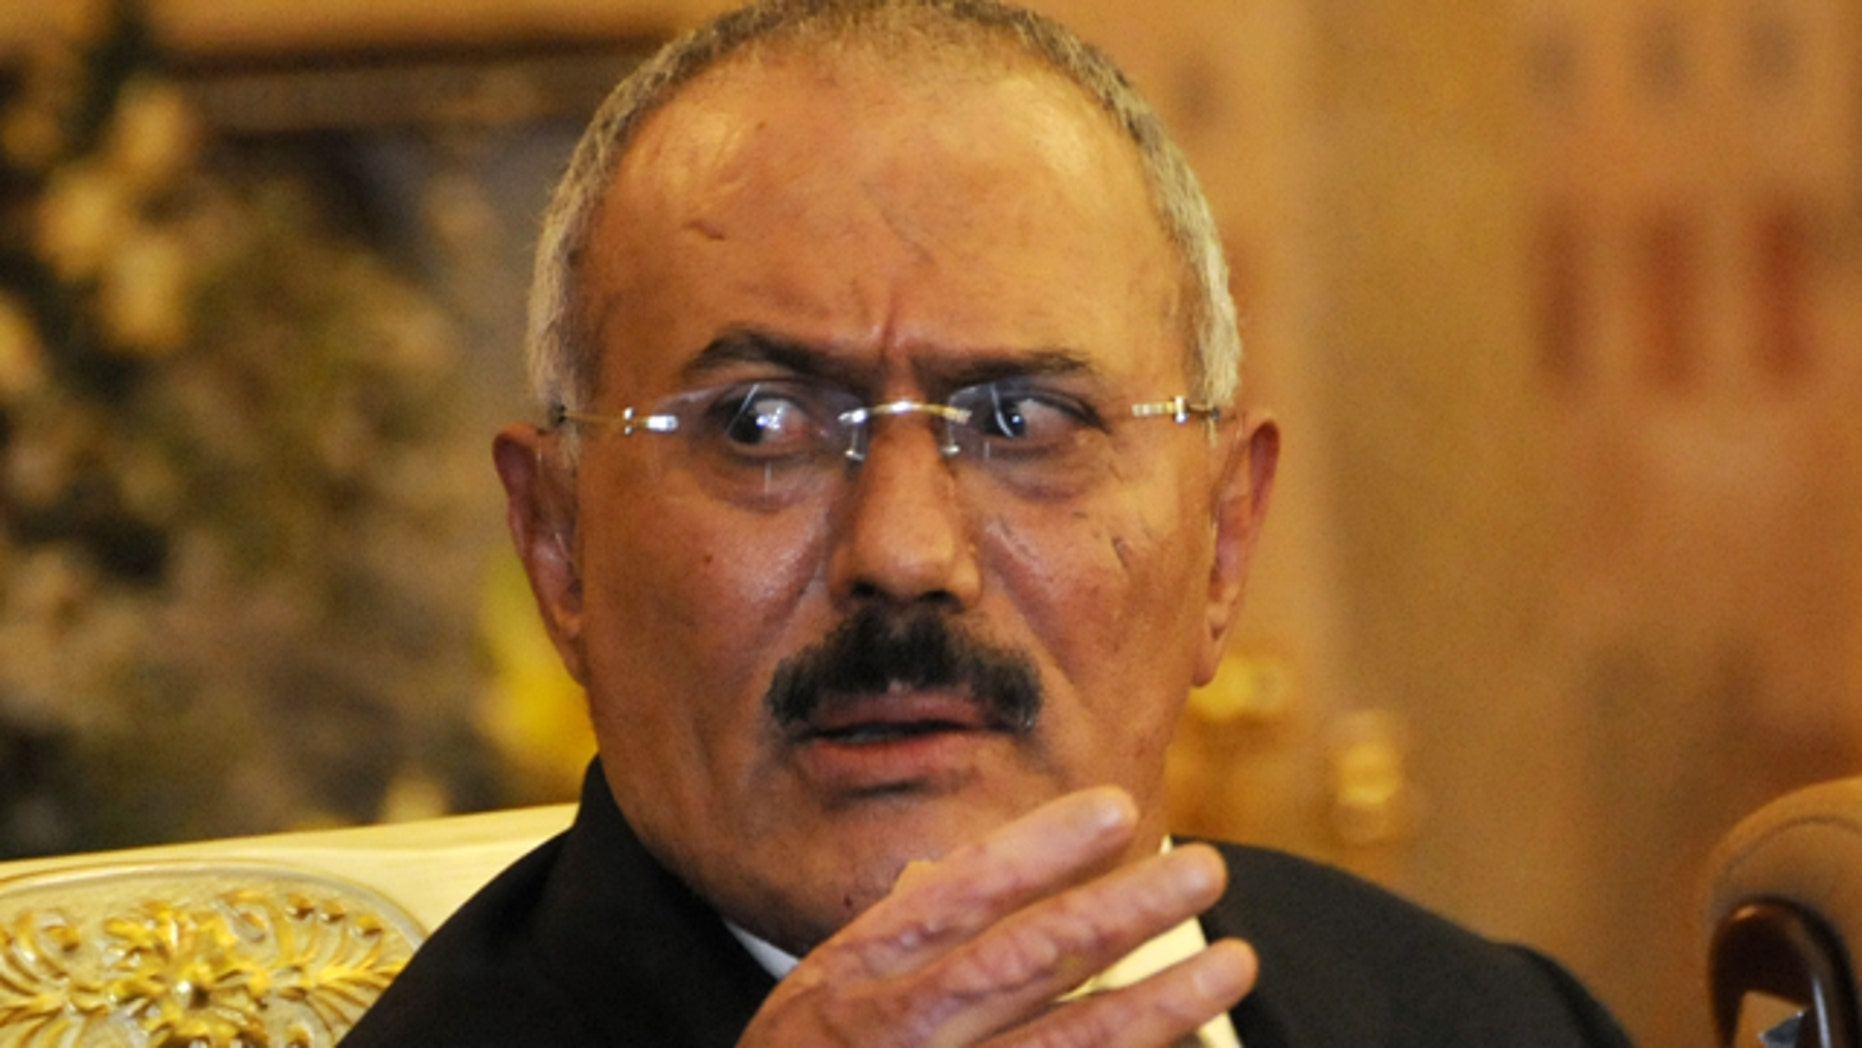 Dec. 24, 2011: Yemen's President Ali Abdullah Saleh speaks to reporters during a news conference at the Presidential Palace in Sanaa, Yemen.